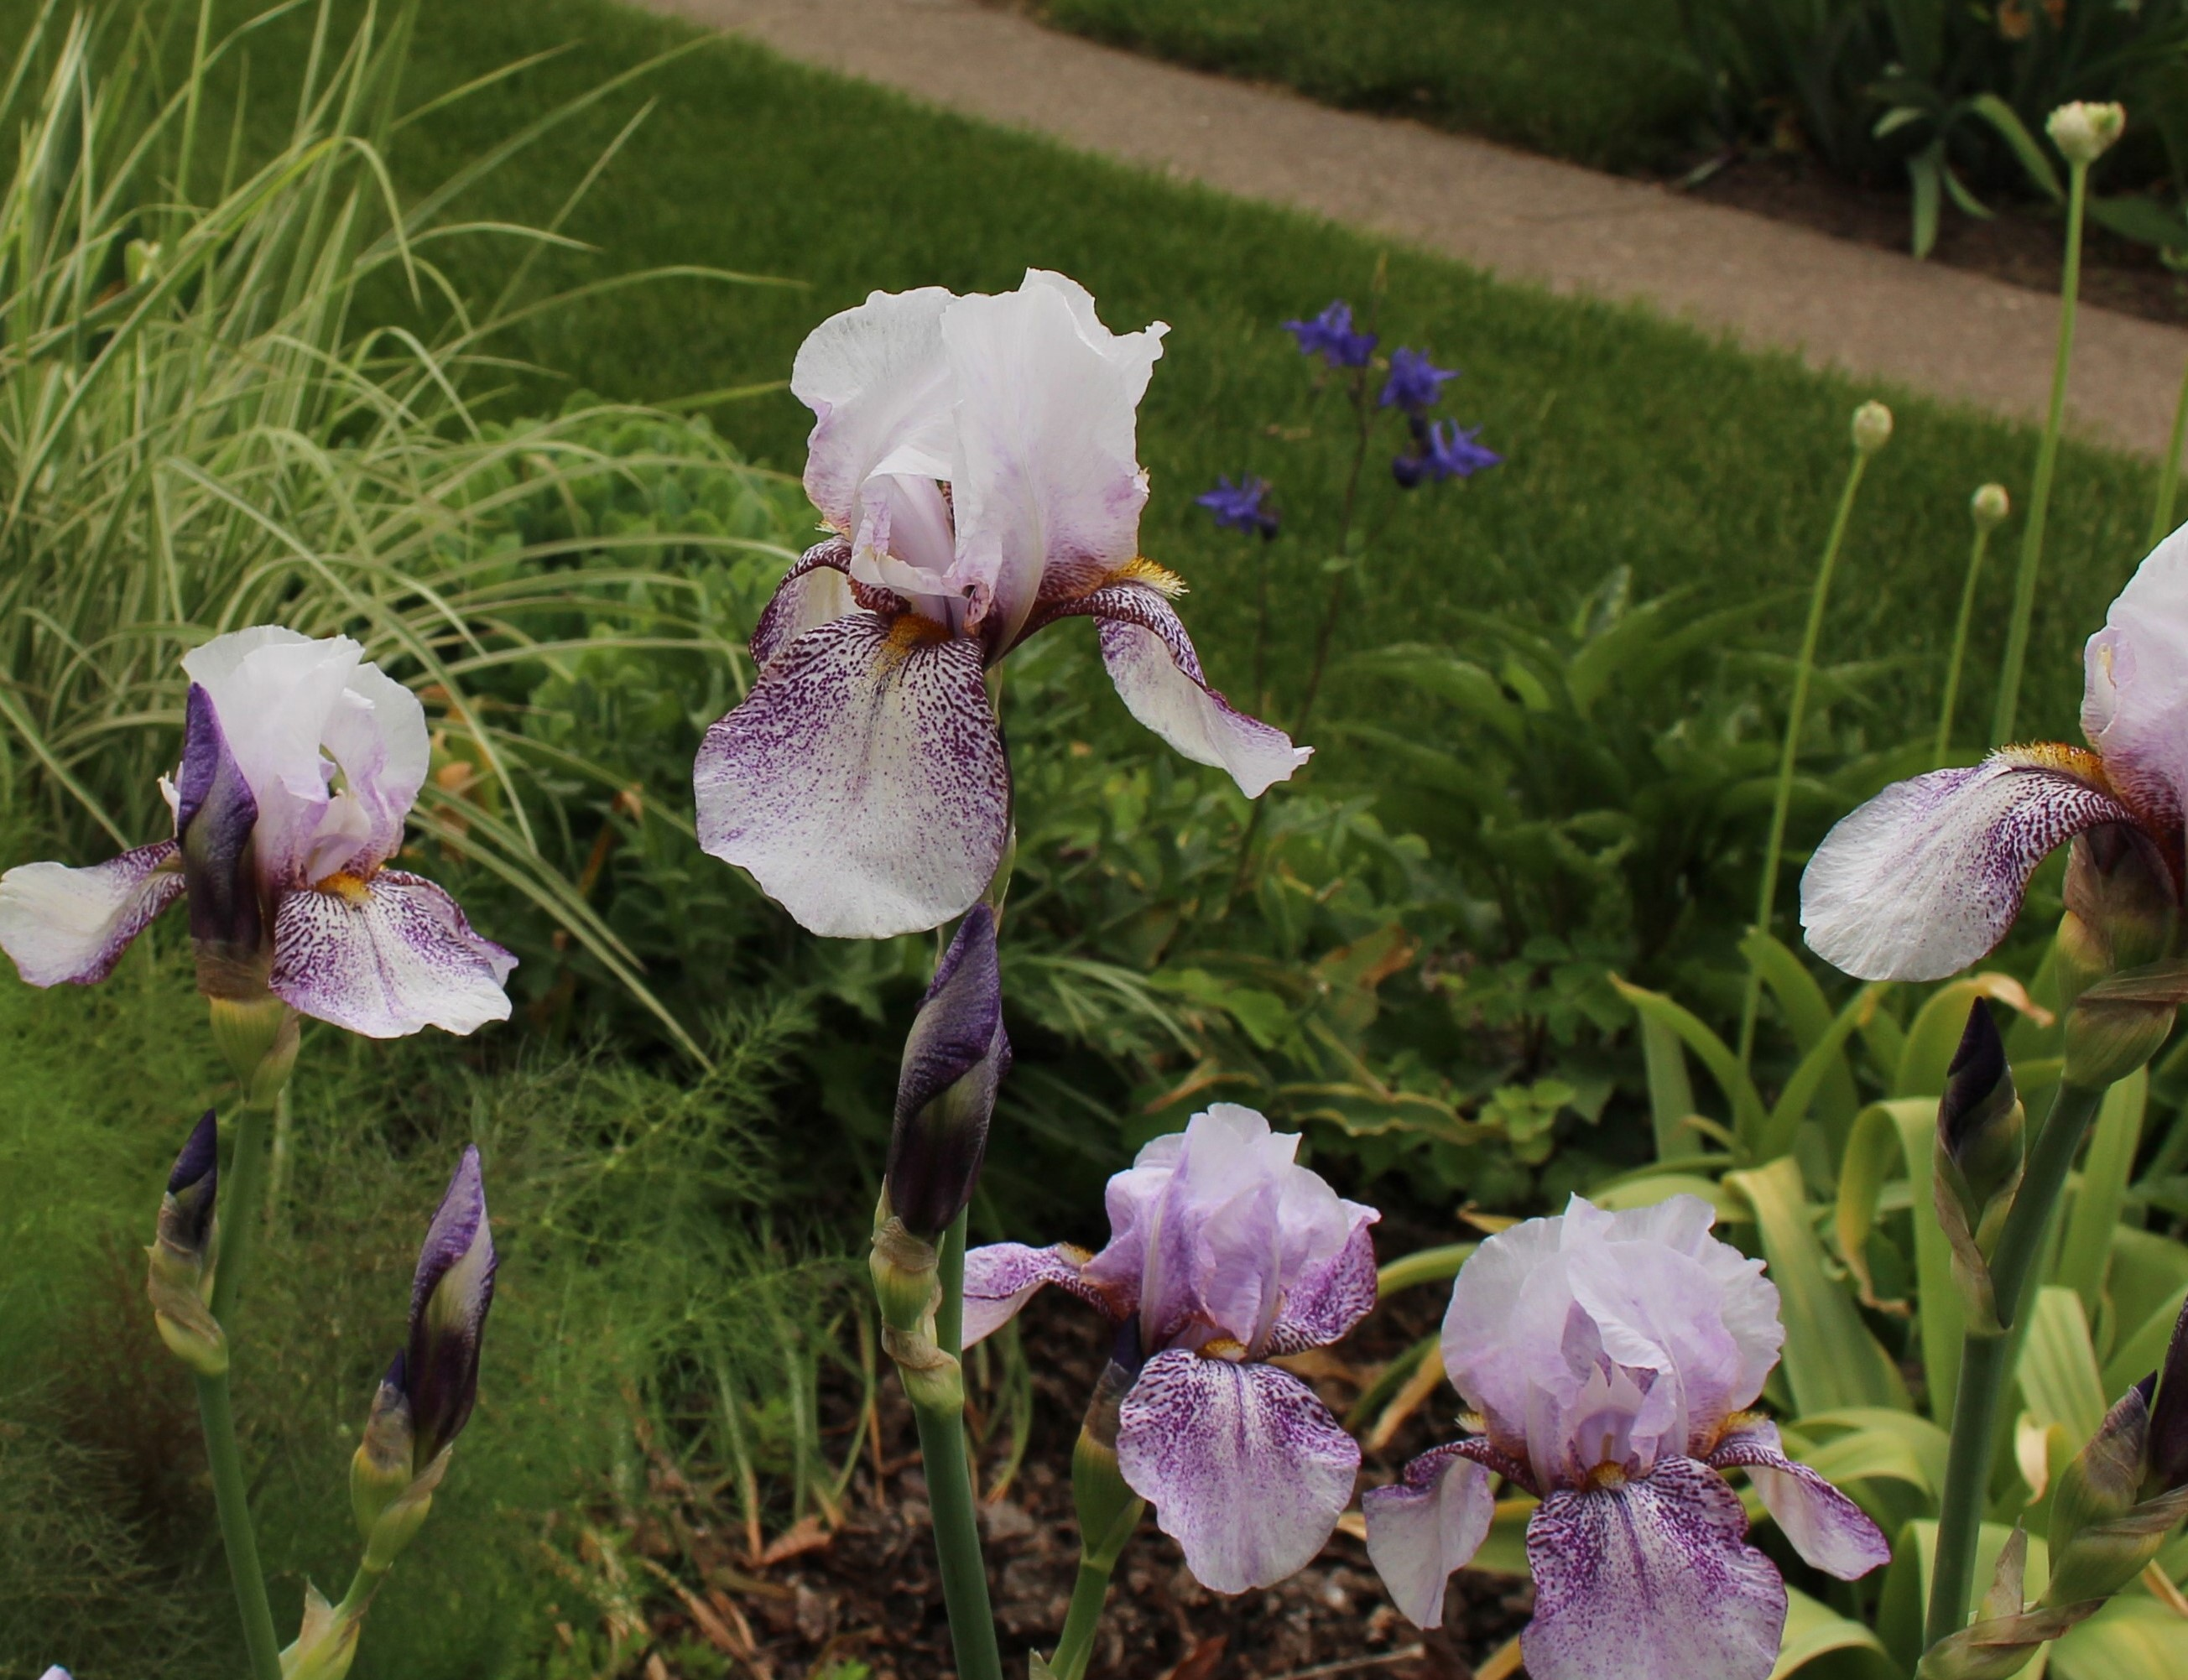 Iris sorta like suburbia iris rhages looking a little pale this year usually the flowers show much more spotting but its still a beauty izmirmasajfo